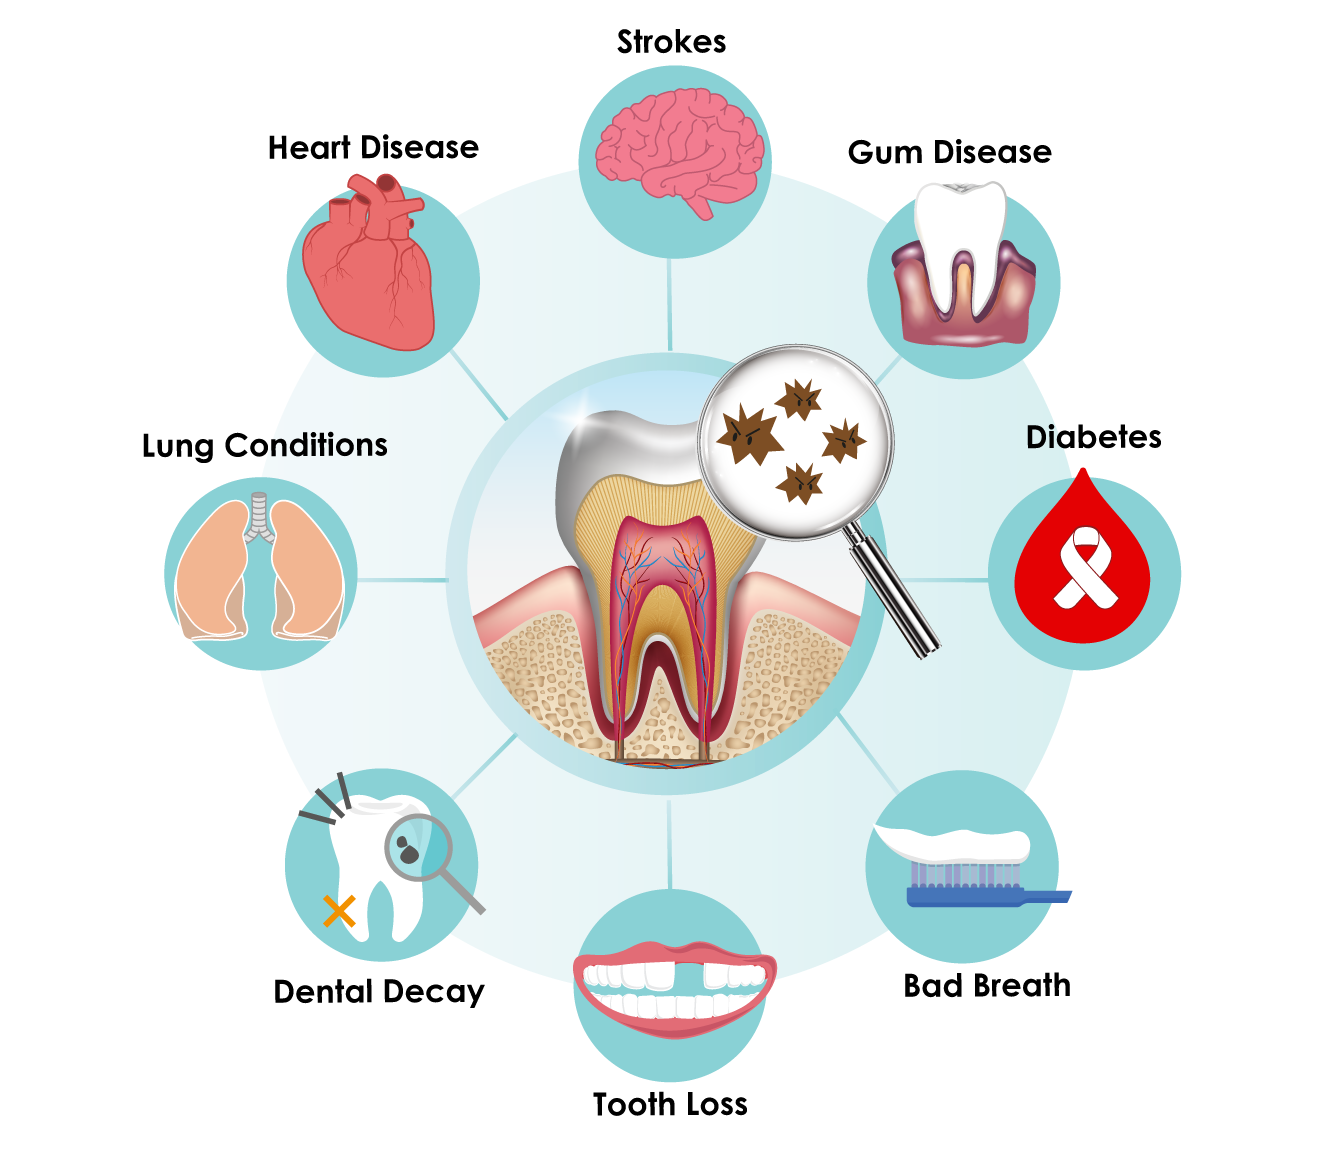 disease clipart mouth bacteria